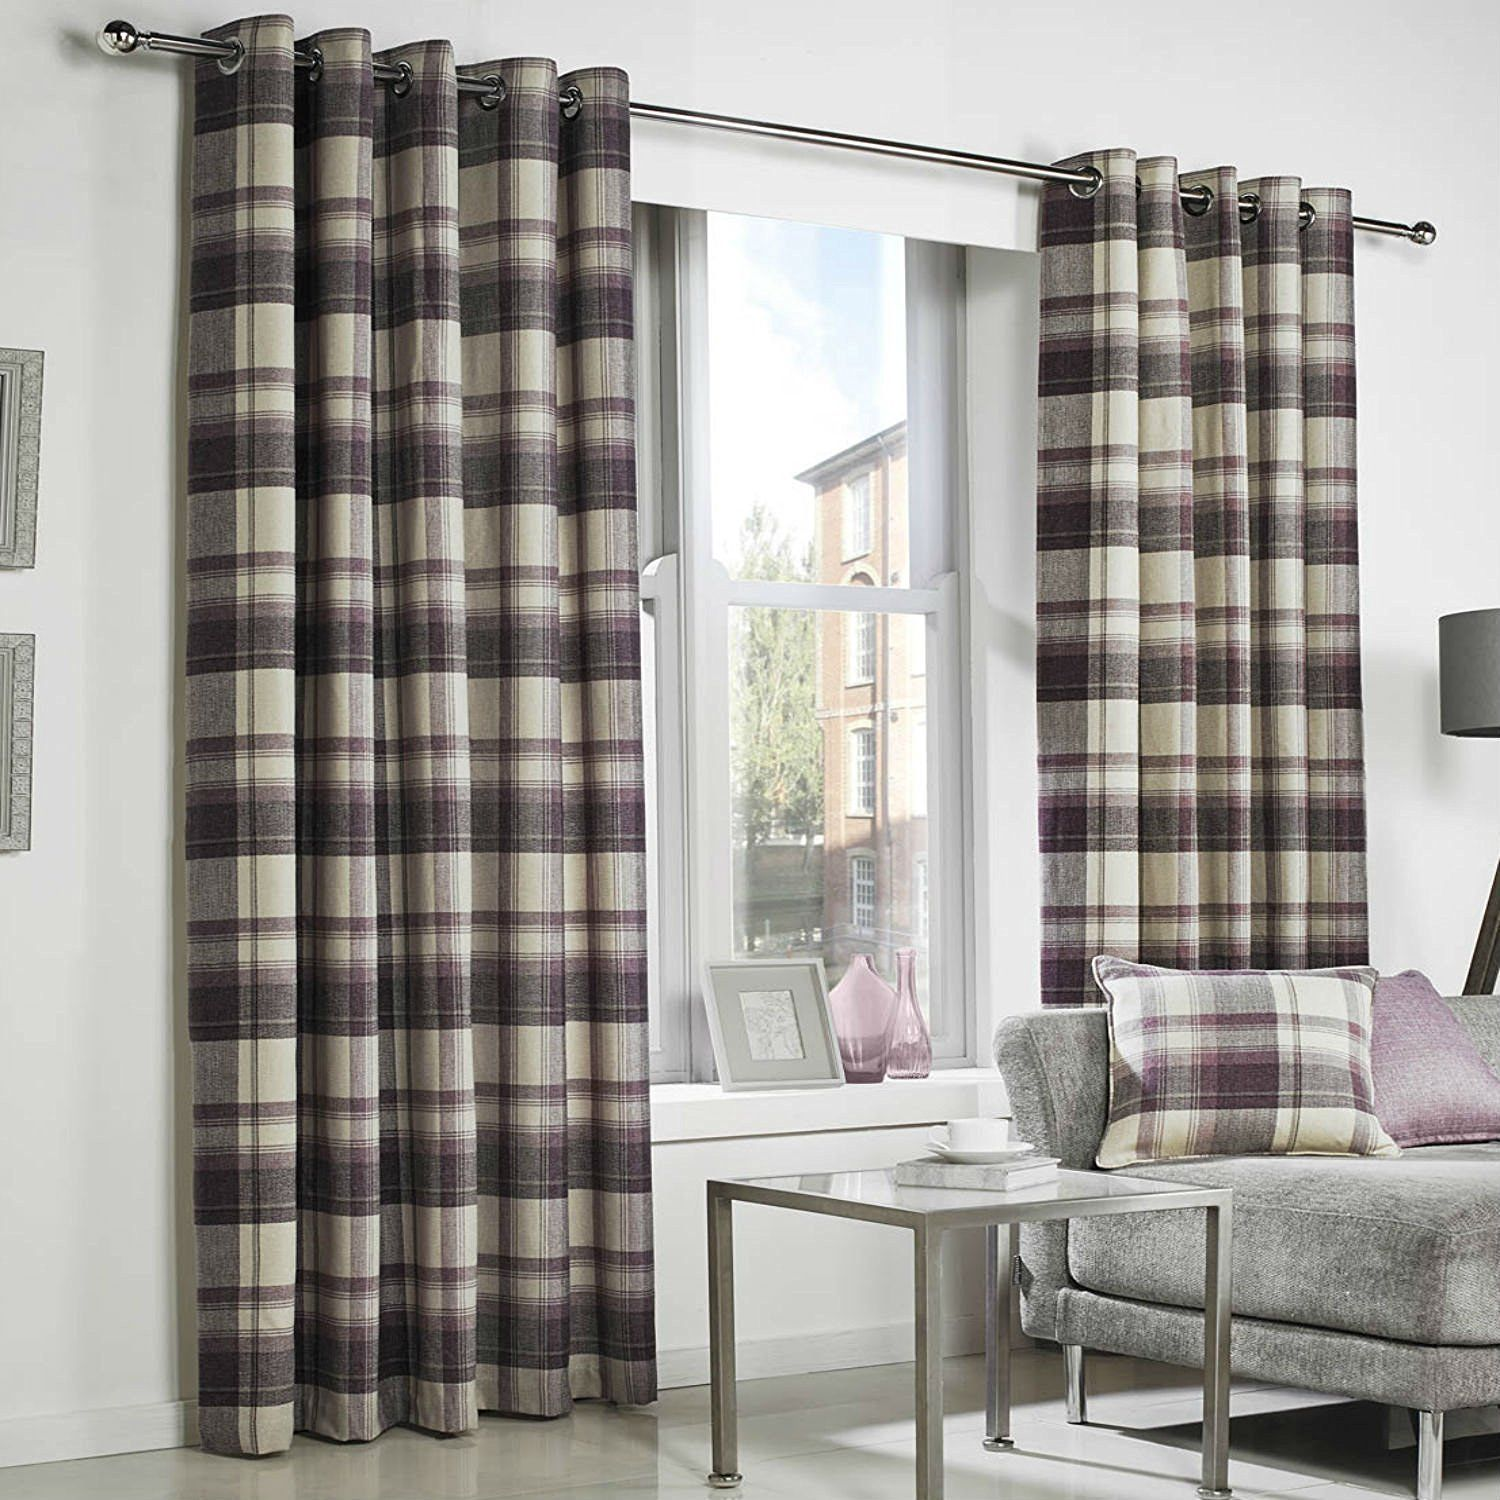 Windsor teal eyelet curtains harry corry limited - Purple Tartan Check Curtains Highland Plum Plum Purple Natural Beige Eyelet Ring Top Cushion Covers